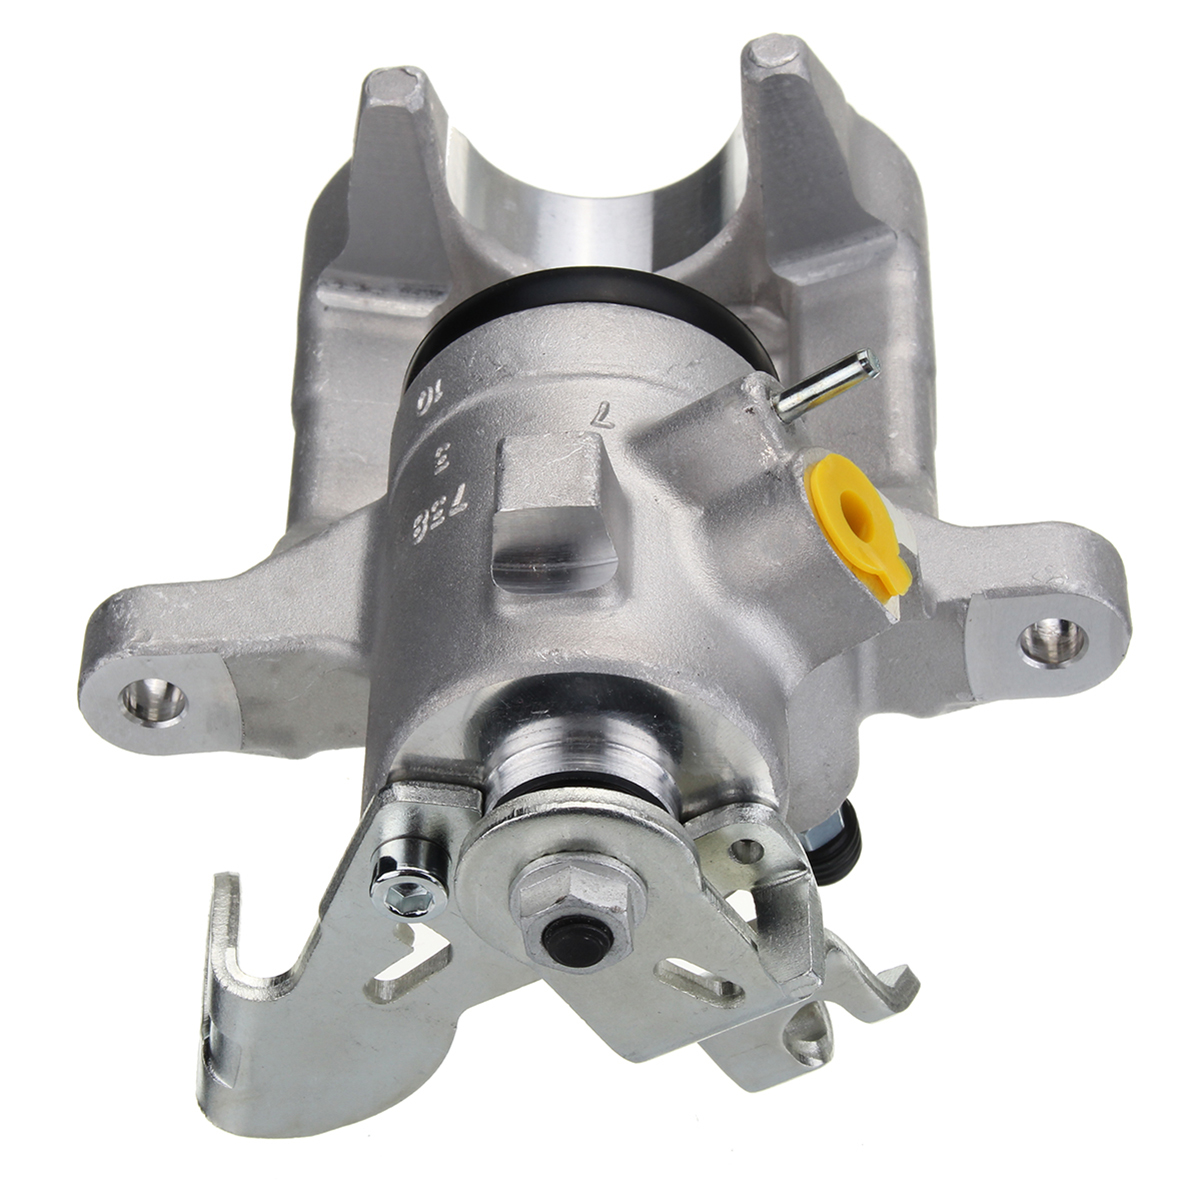 Rear Left And Right Brake Clutch Caliper For VW Passat 3B5 For Audi A4 A6